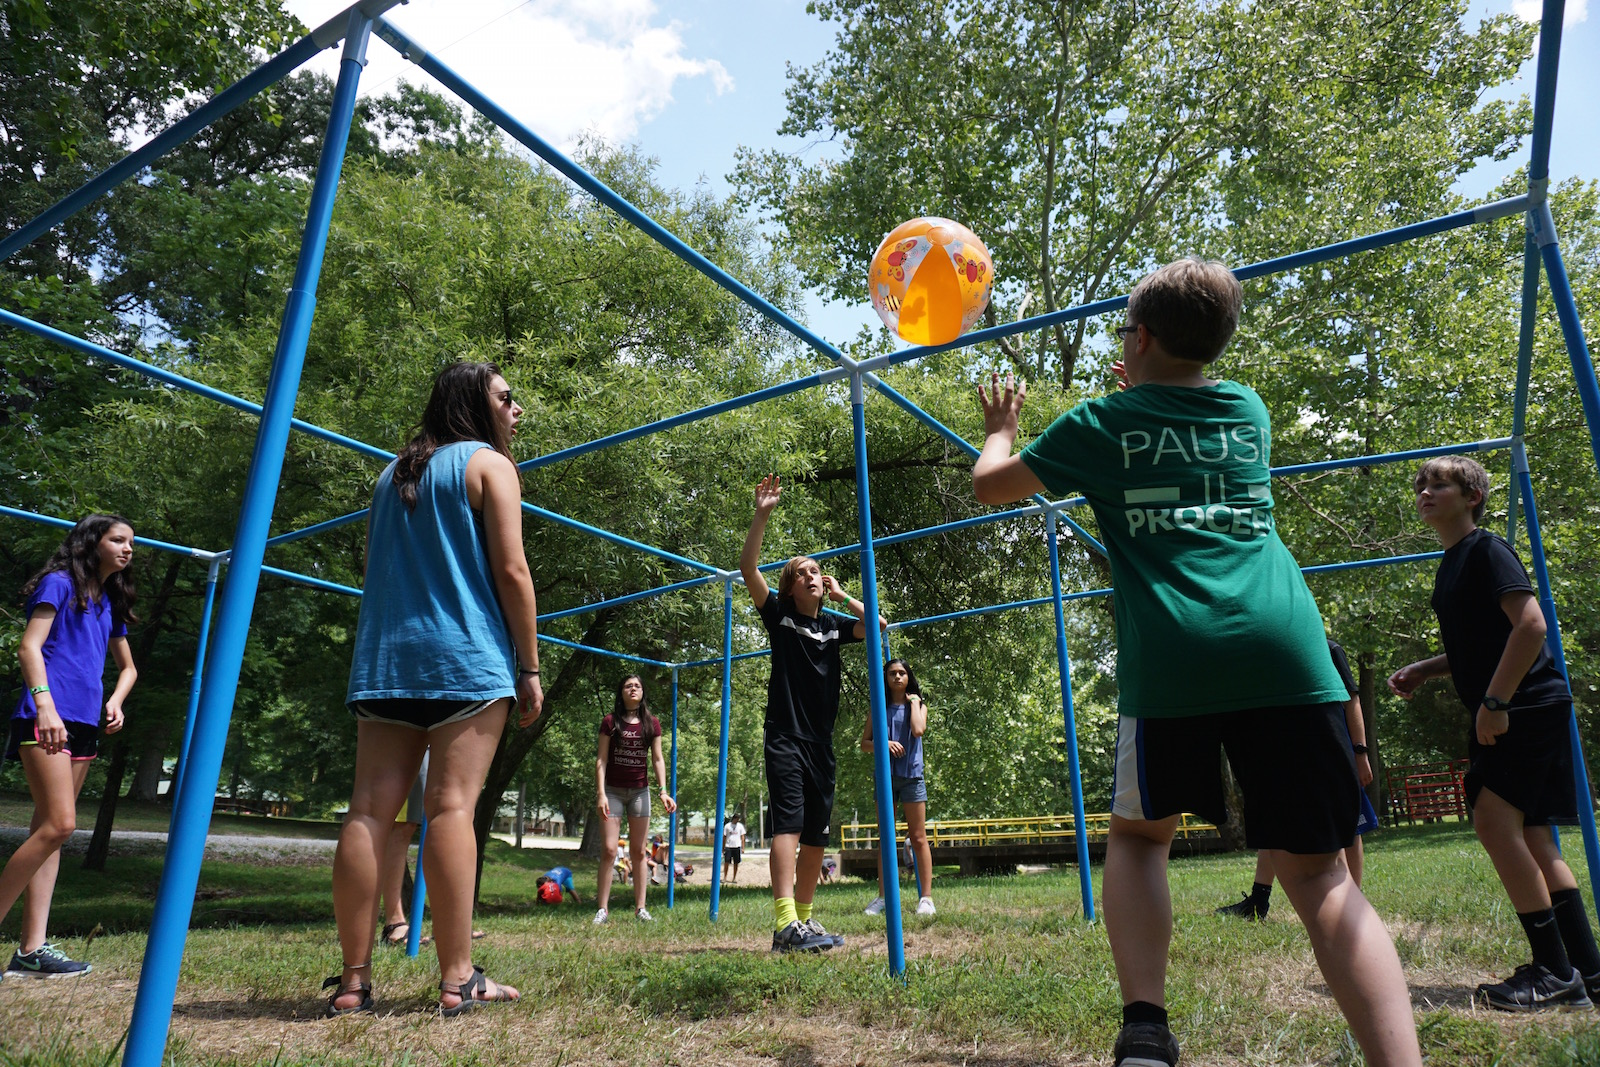 Middle School aged Summer Campers playing a game with an orange ball - NaCoMe Camp & Conference Center